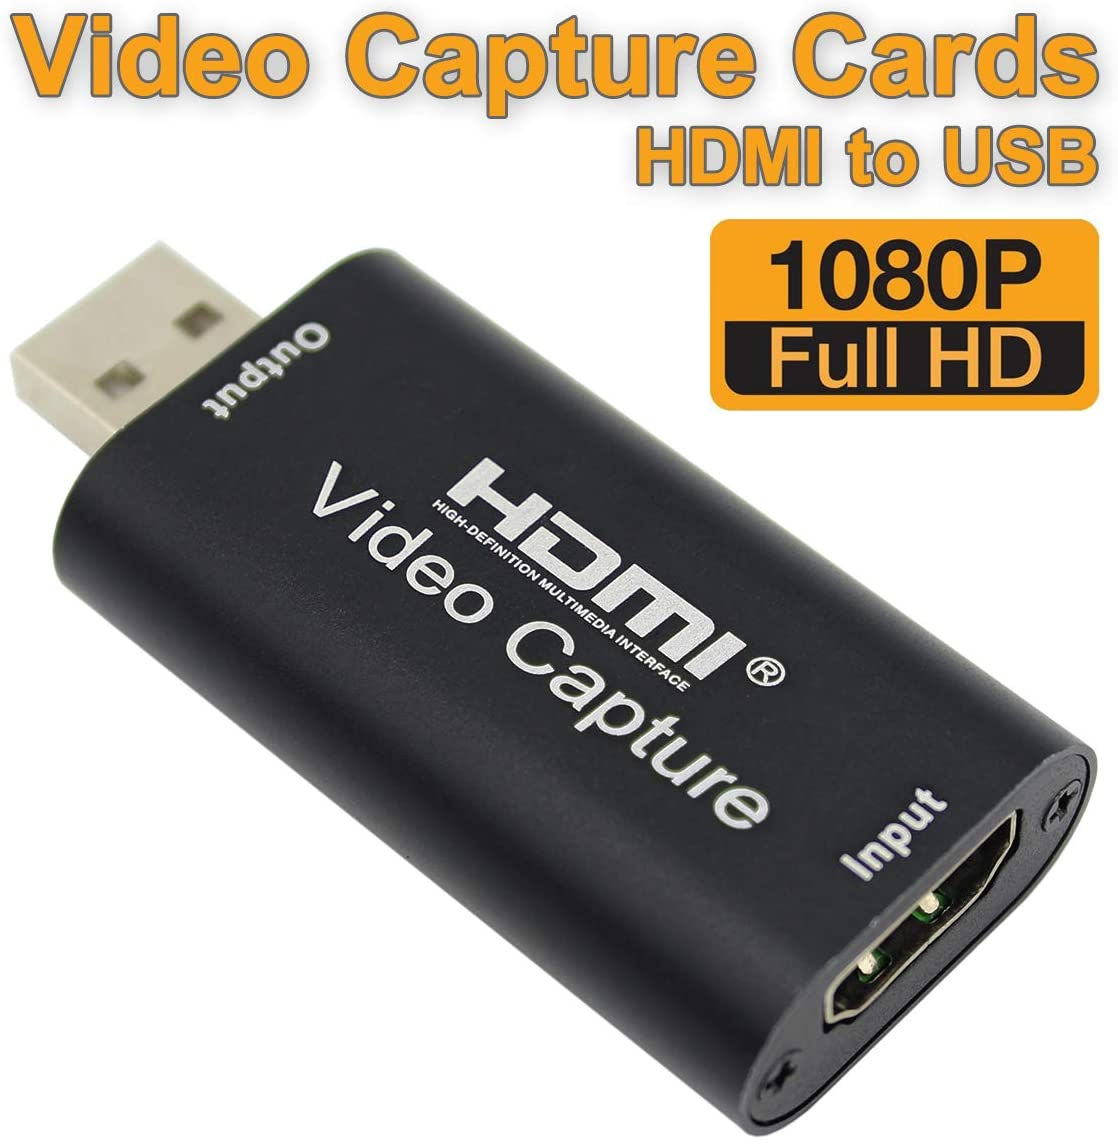 Streaming Video Capture Card Vilcome Video Audio HDMI to USB Record Card Live Broadcasting and Facebook Portal TV Record Full HD 1080p USB 2.0 Record via DSLR Camcorder Action Cam for Video Gaming